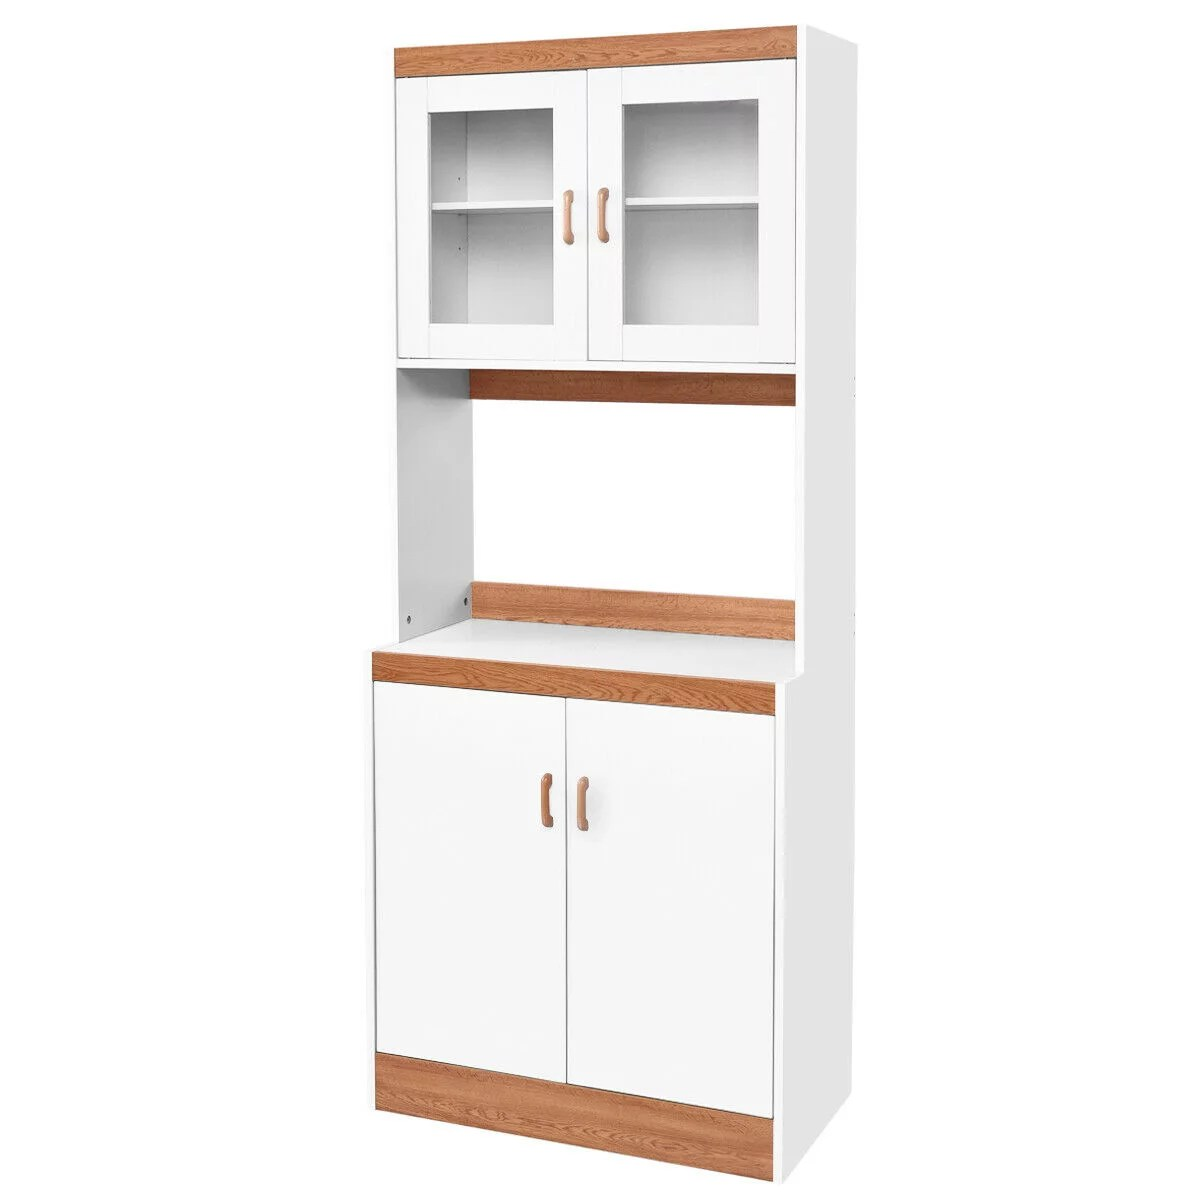 gymax tall microwave cart stand kitchen storage cabinet shelves pantry cupboard white walmart com